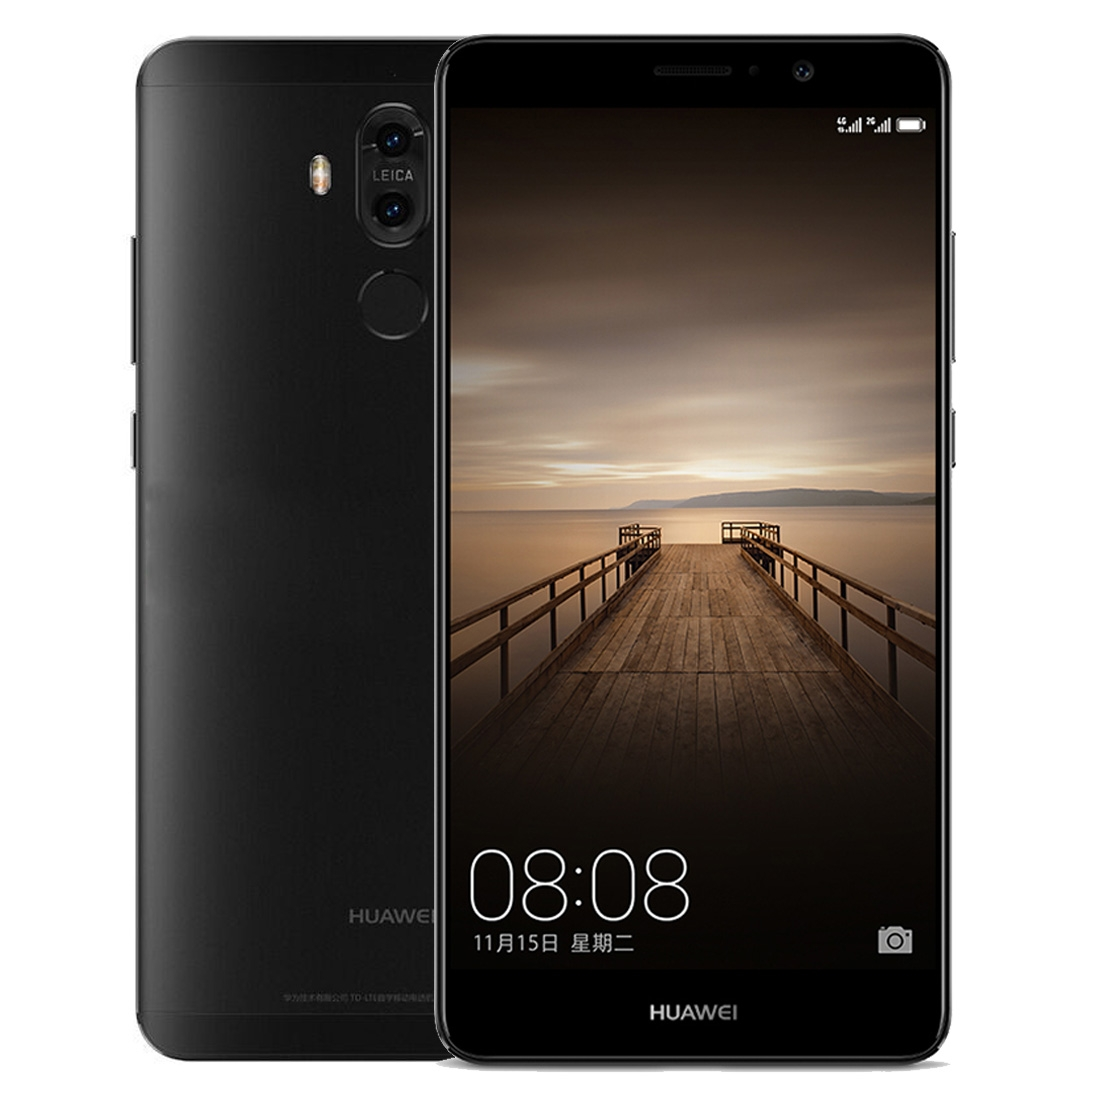 Huawei Mate 9, 4GB+64GB, plus smart hod. U80, BLACK